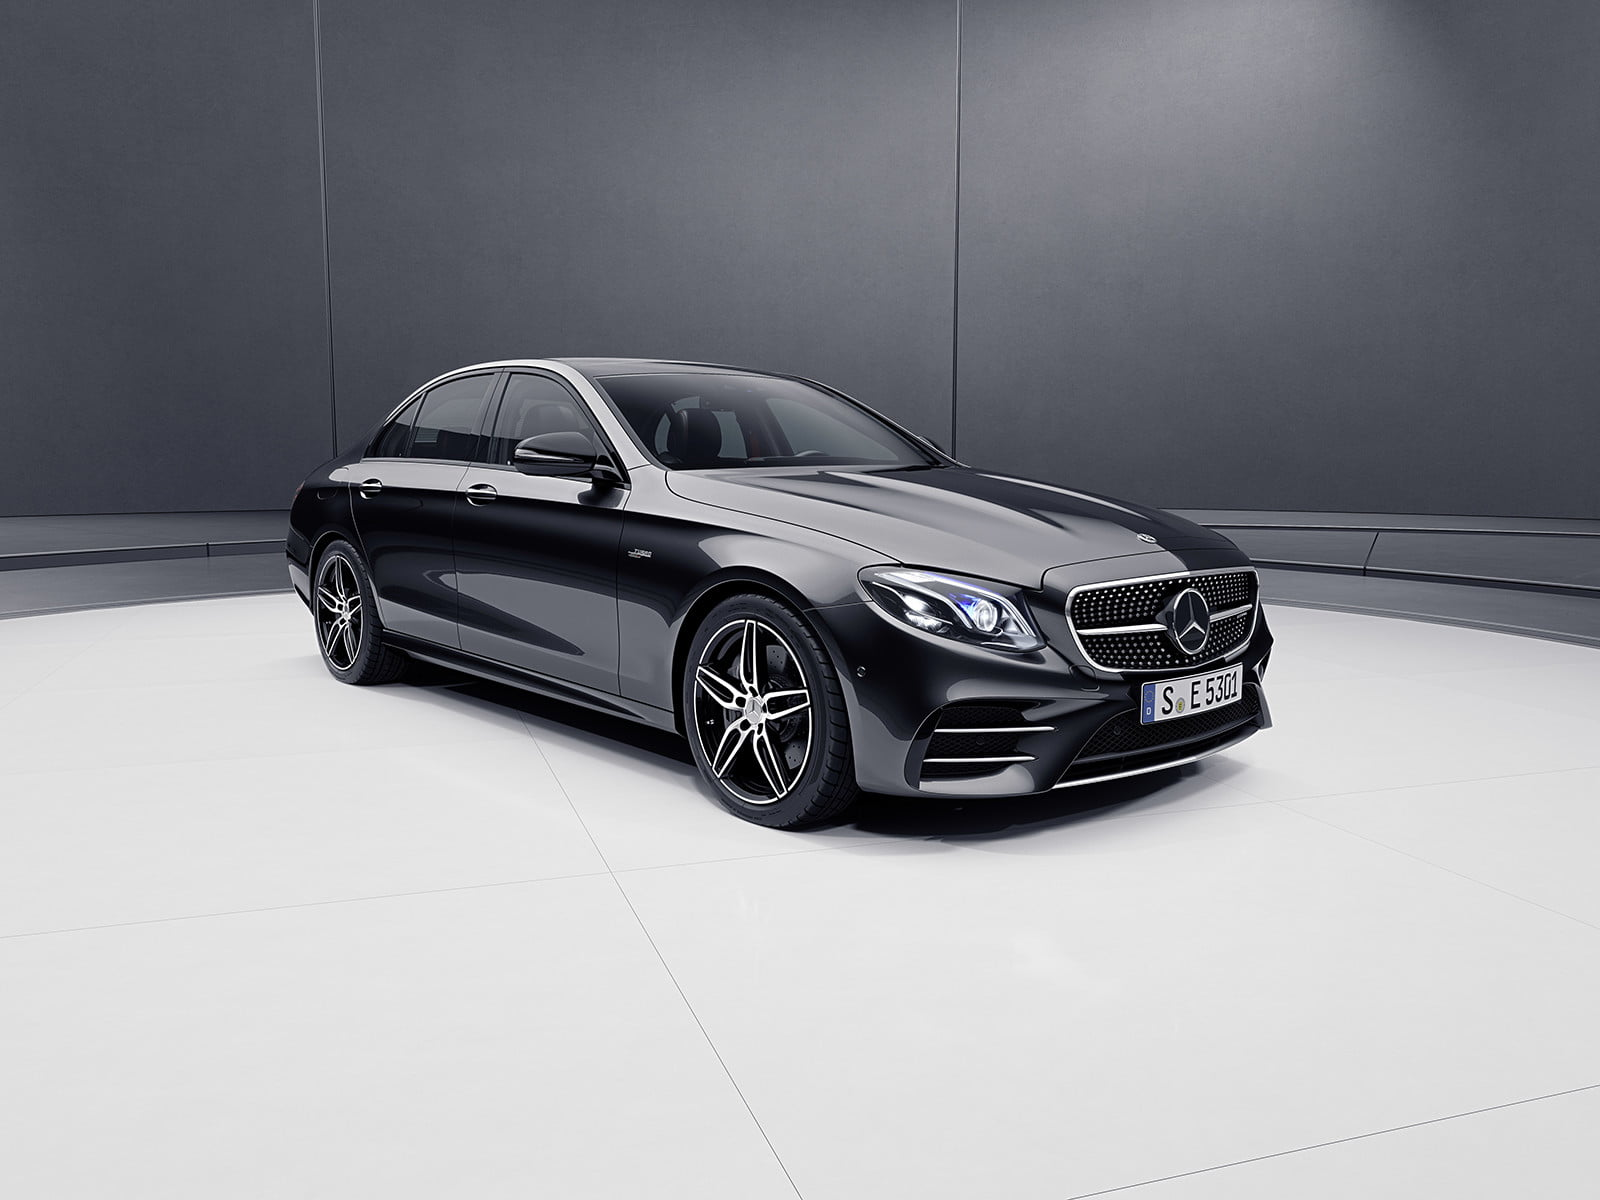 Mercedes amg unleashes details on us bound e53 lineup for for Mercedes benz wichita falls tx